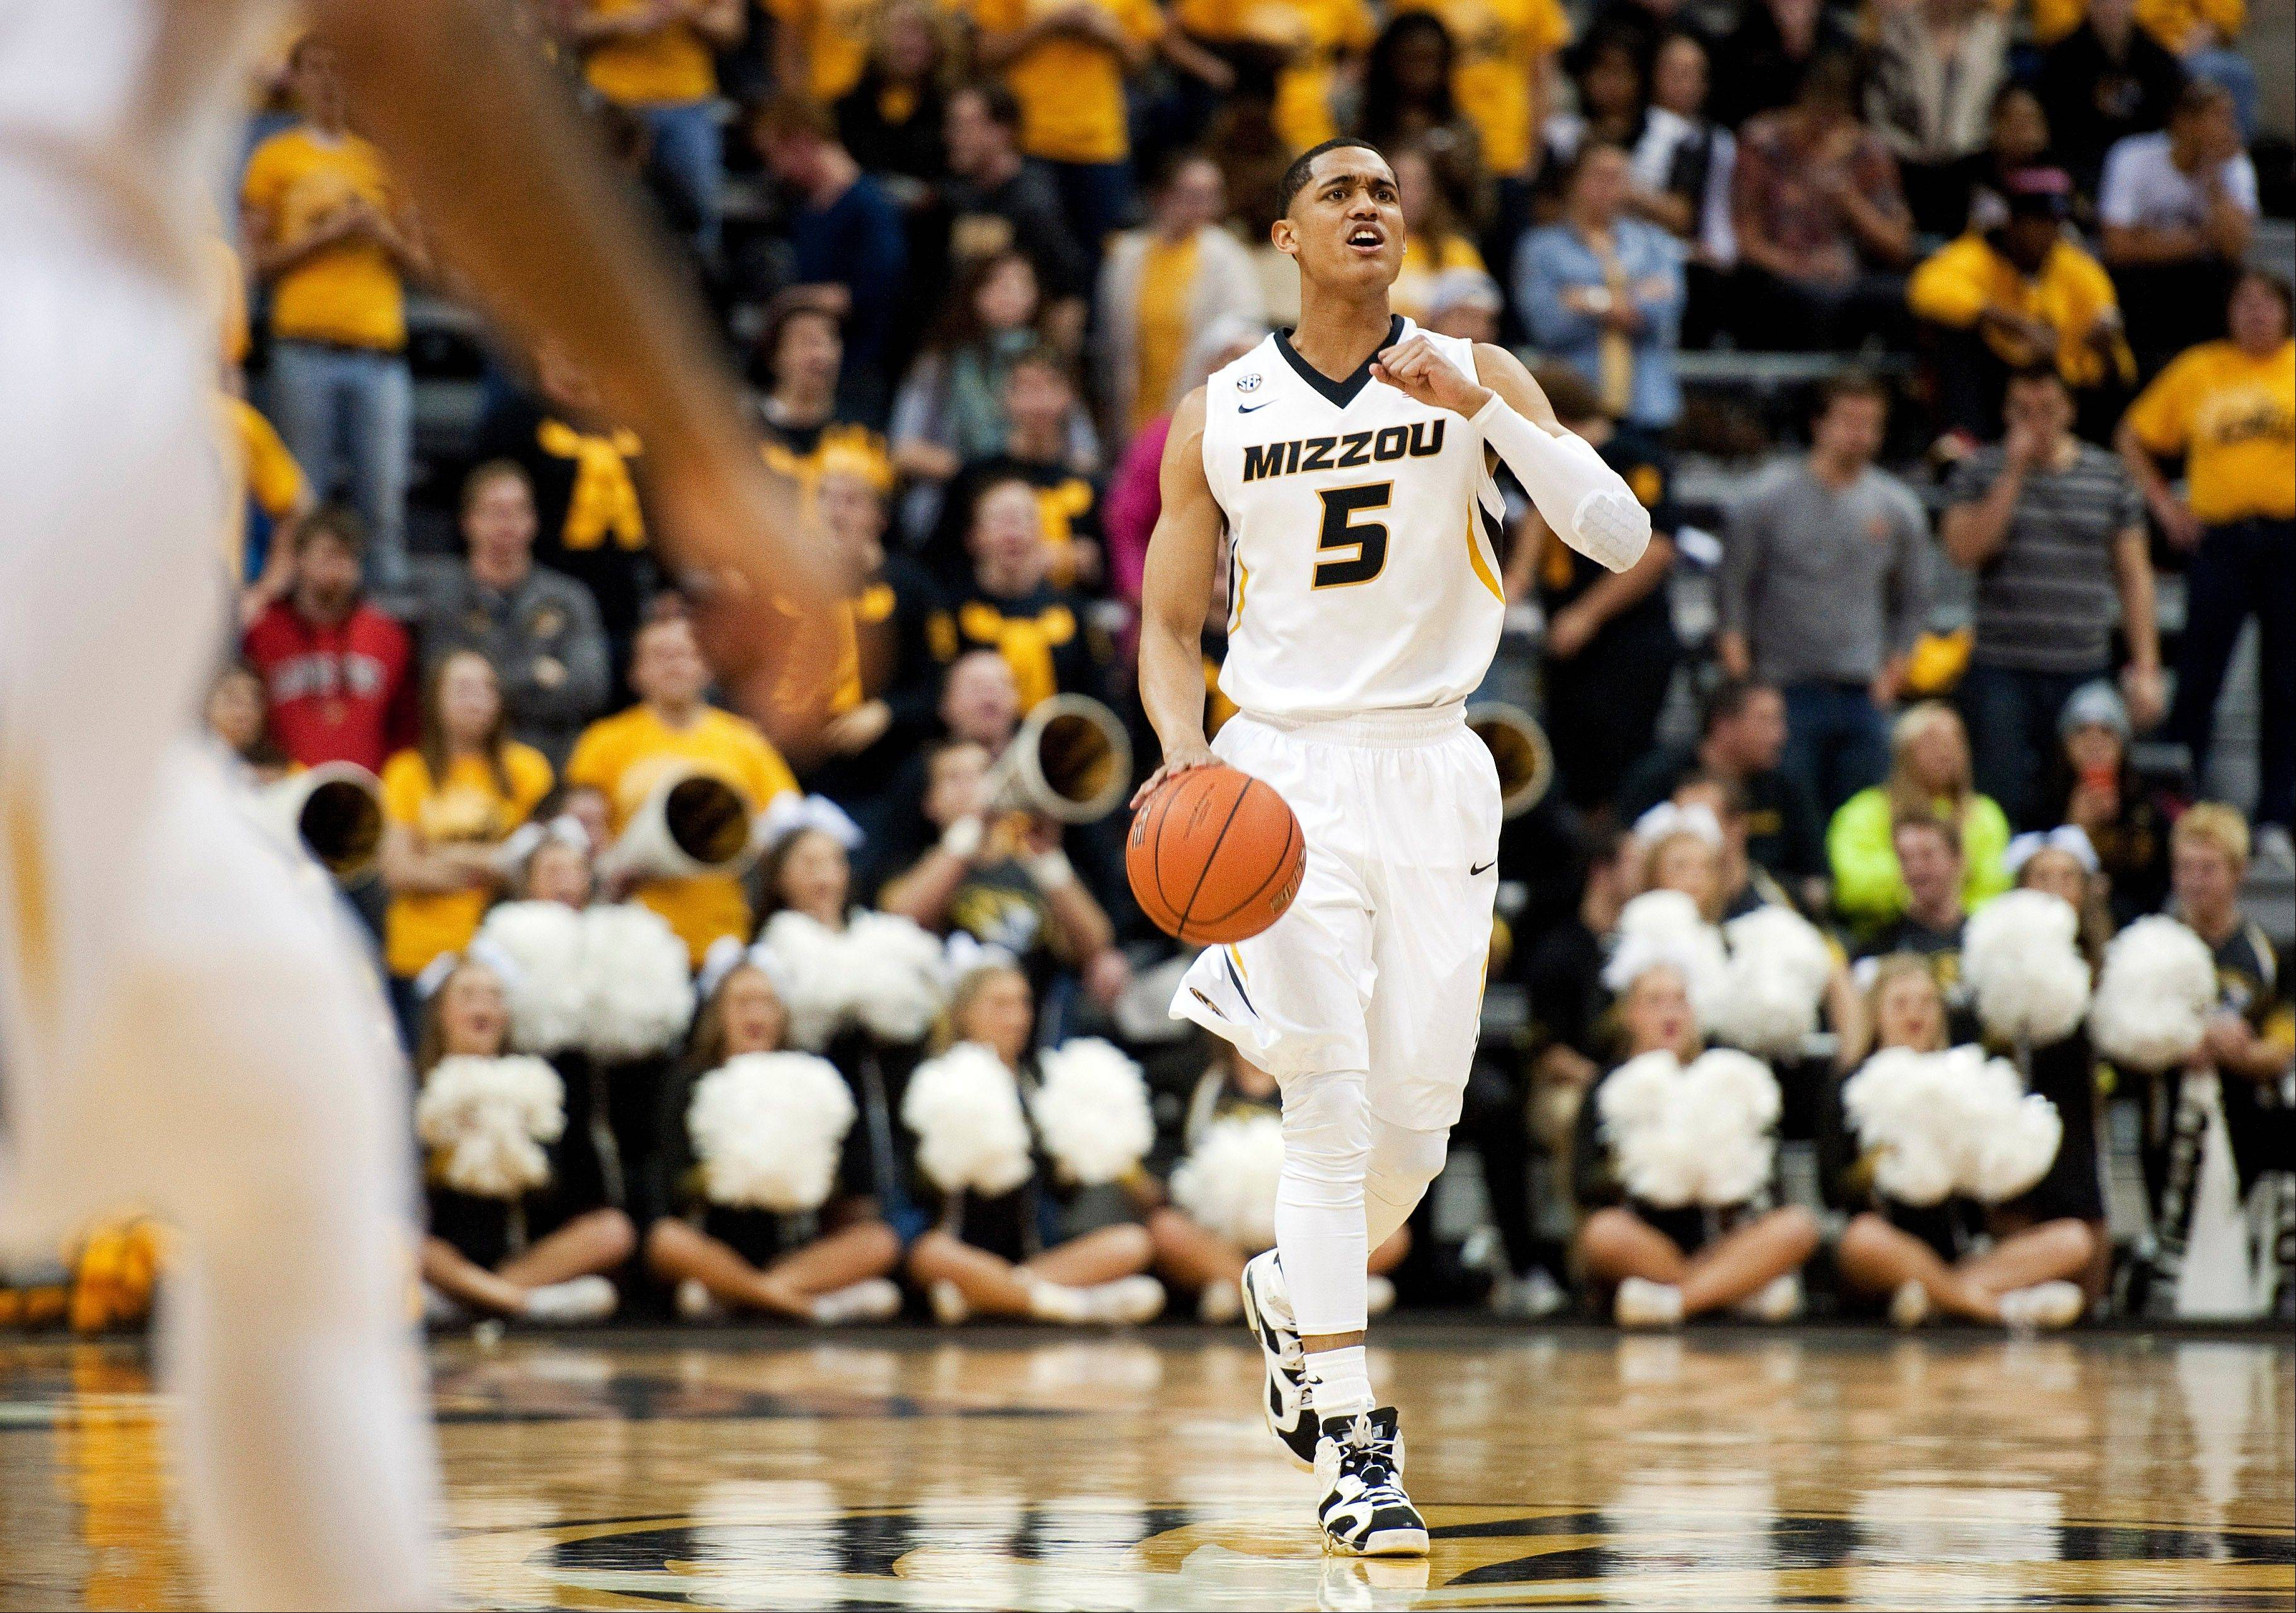 Missouri's Jordan Clarkson brings the ball up court during the first half of an NCAA college basketball game against Western Michigan, Sunday, Dec. 15, 2013, in Columbia, Mo. Missouri won 66-60.